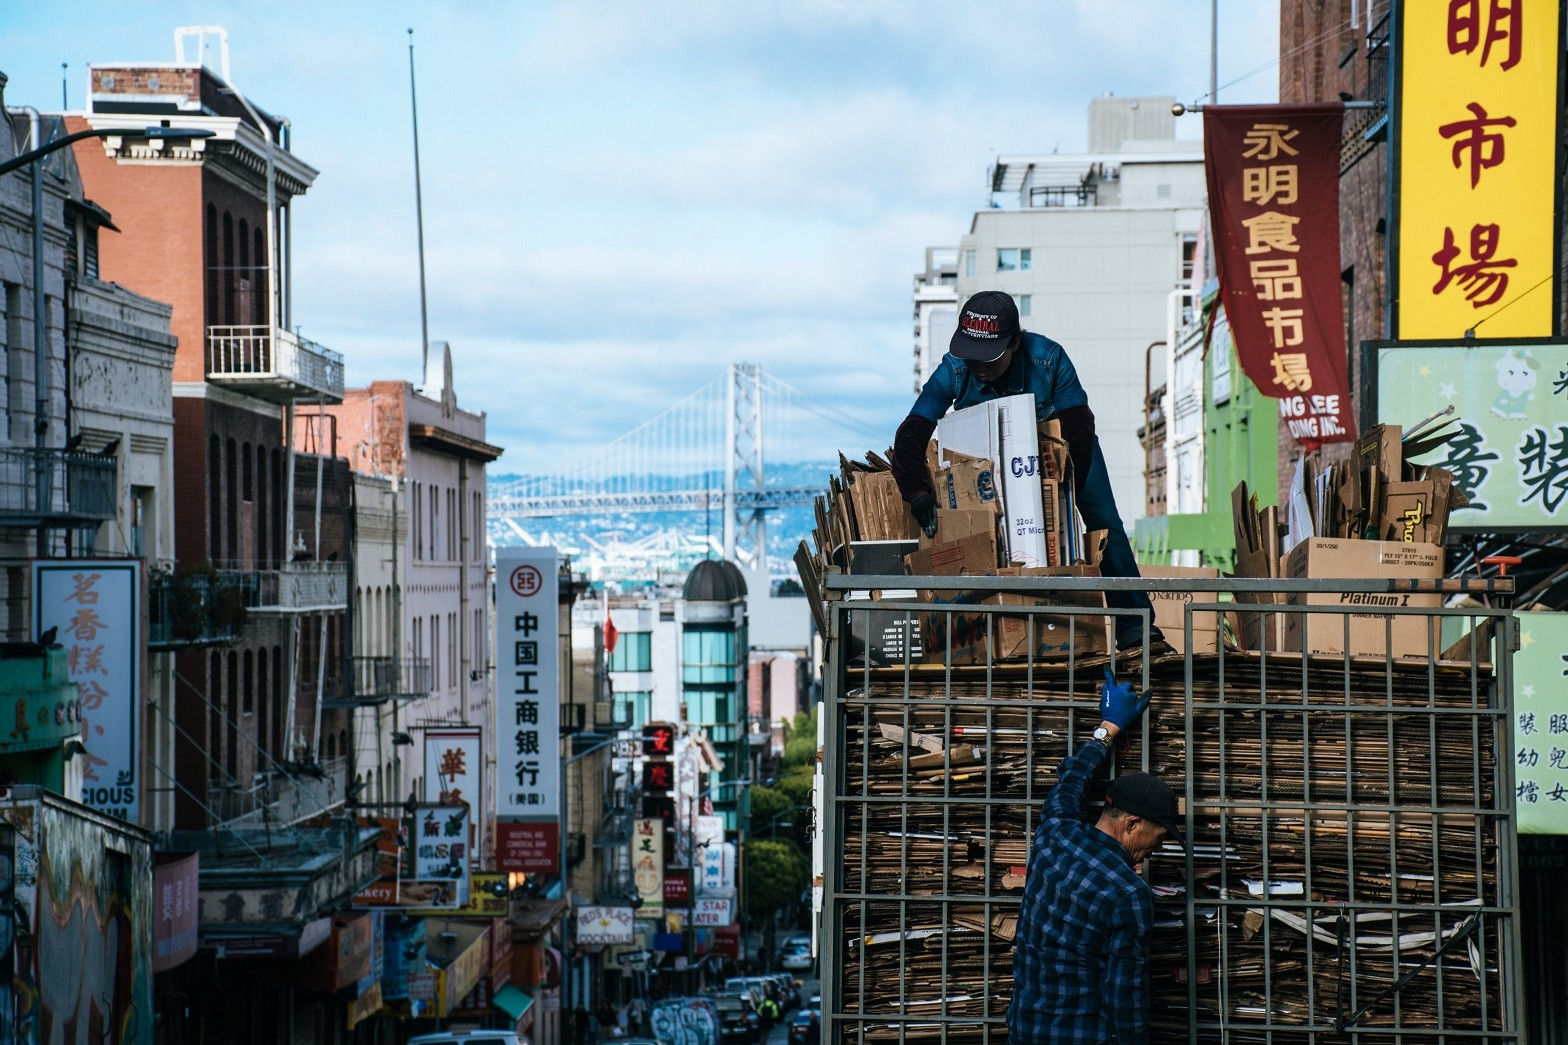 san francisco and poverty